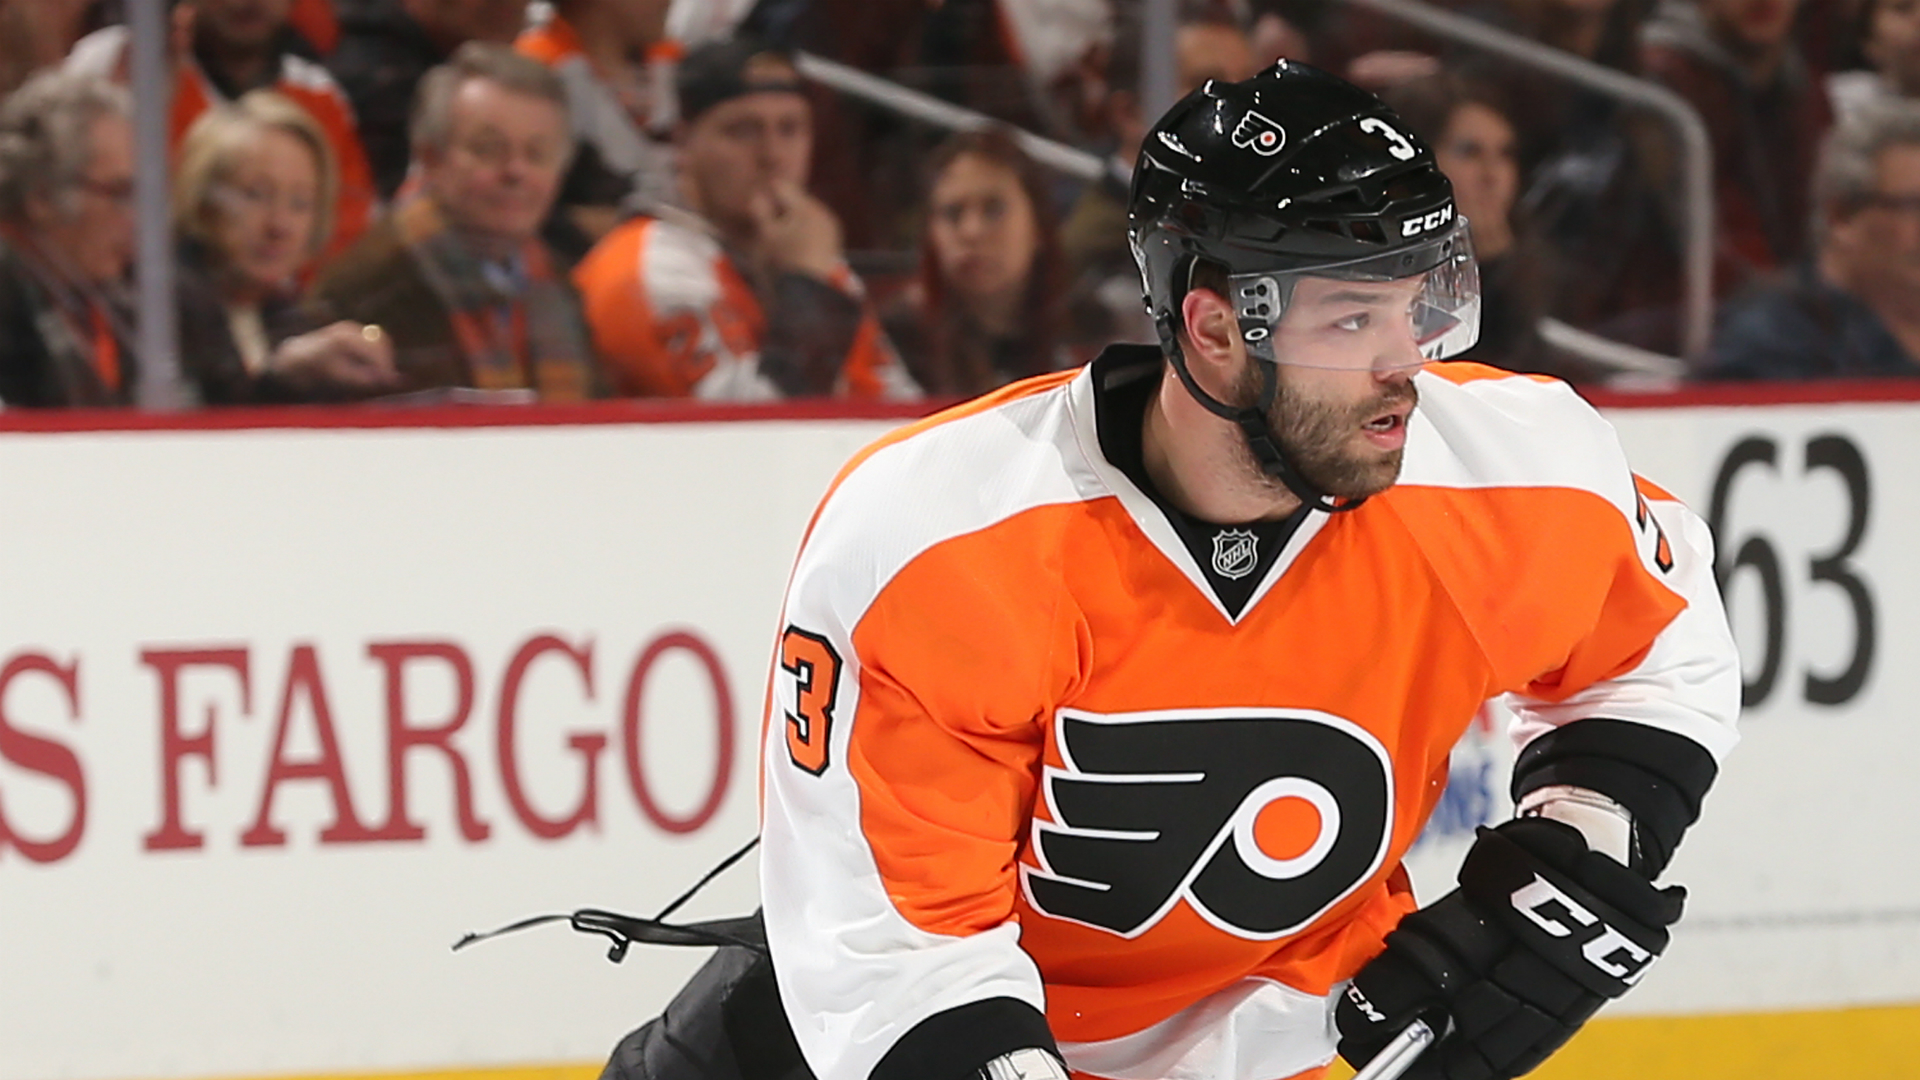 Flyers D Radko Gudas Suspended for 10 Games